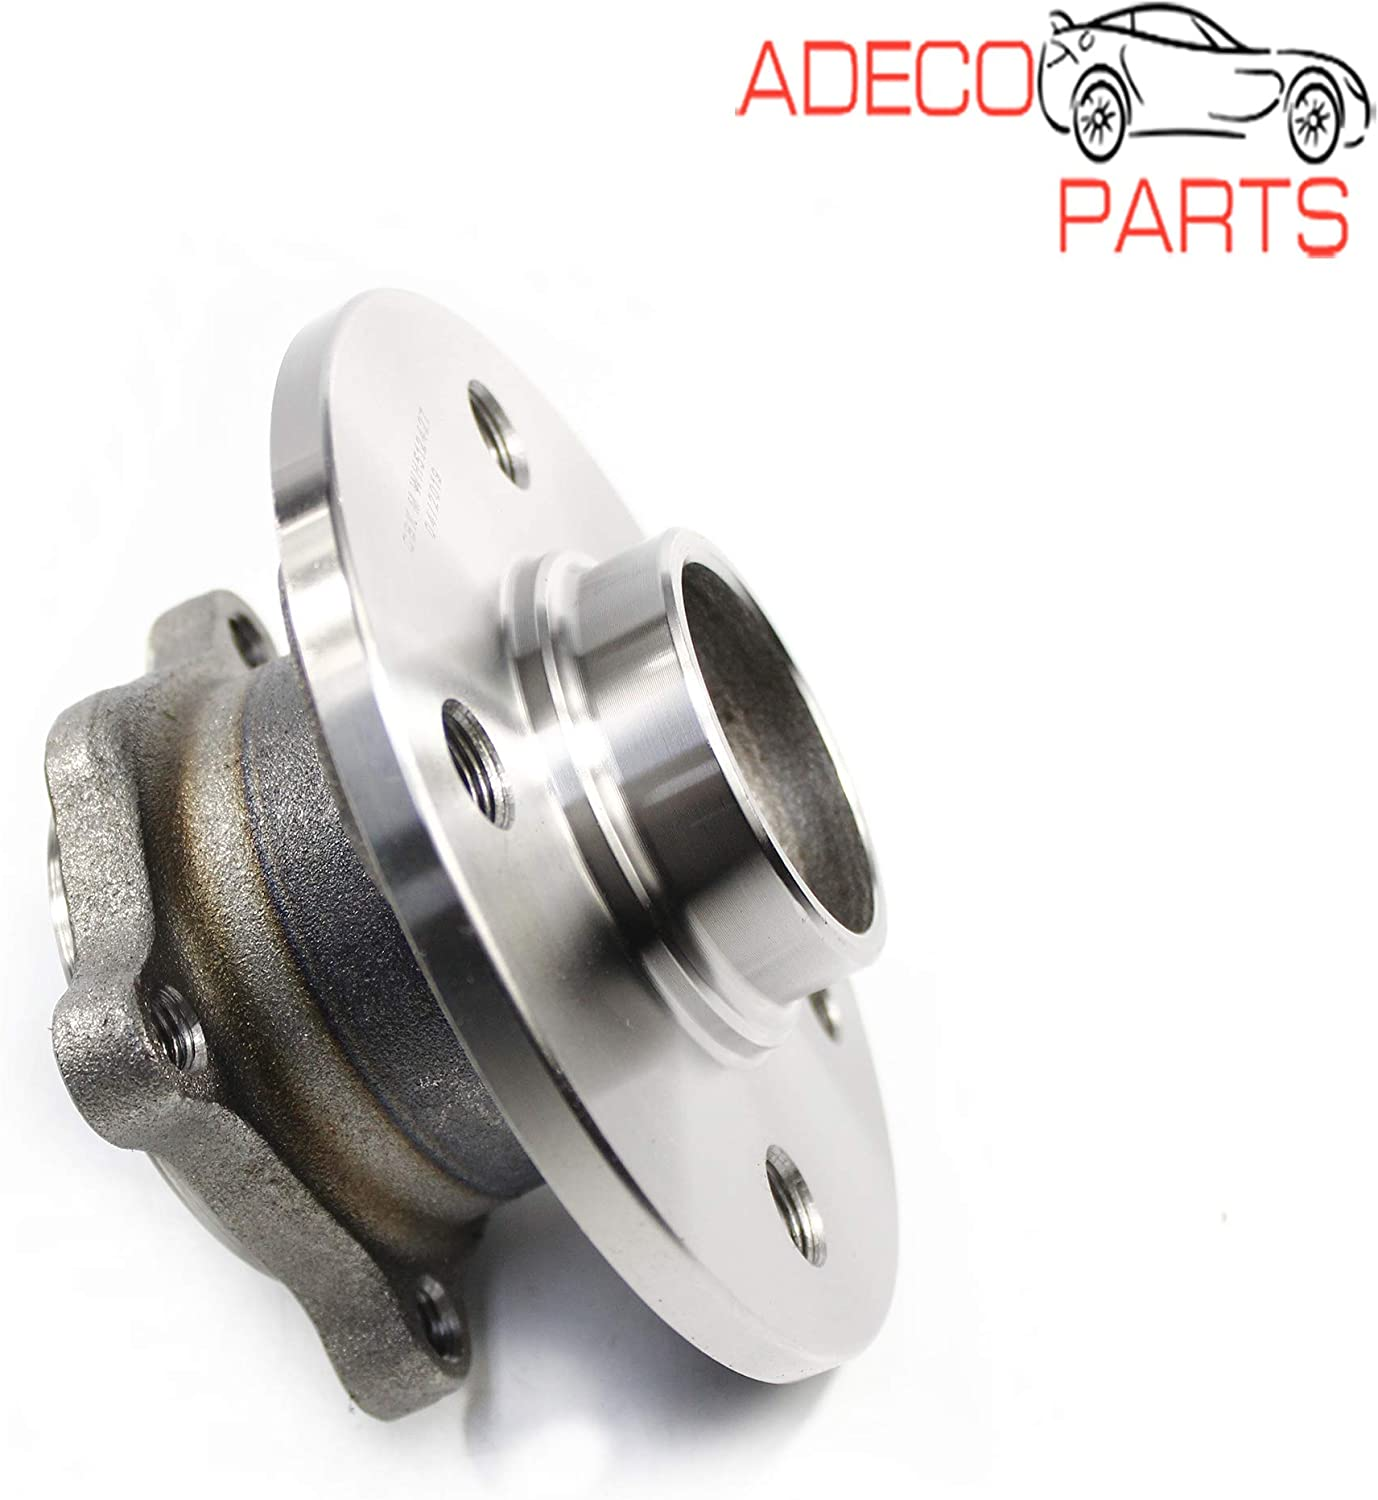 AdecoAutoParts/© Two Rear Wheel Bearing /& Hub Assembly 512427 BR930763 for Mini Cooper 2007 2008 2009 2010 2011 2012 2013 2014 2015 4 Stud Pattern